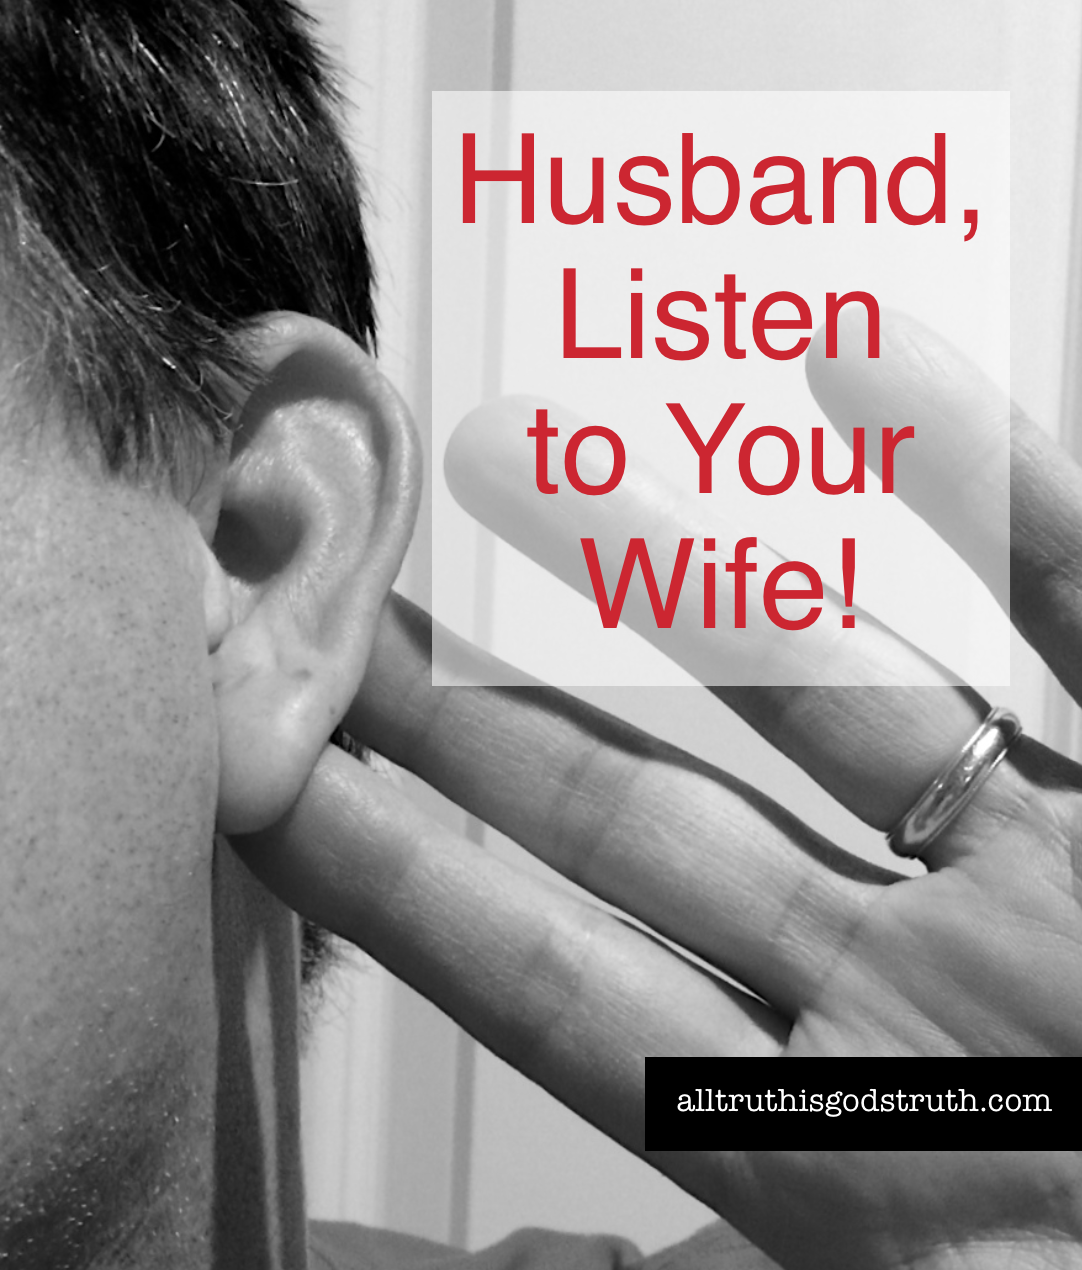 Husband, Listen to Your Wife!